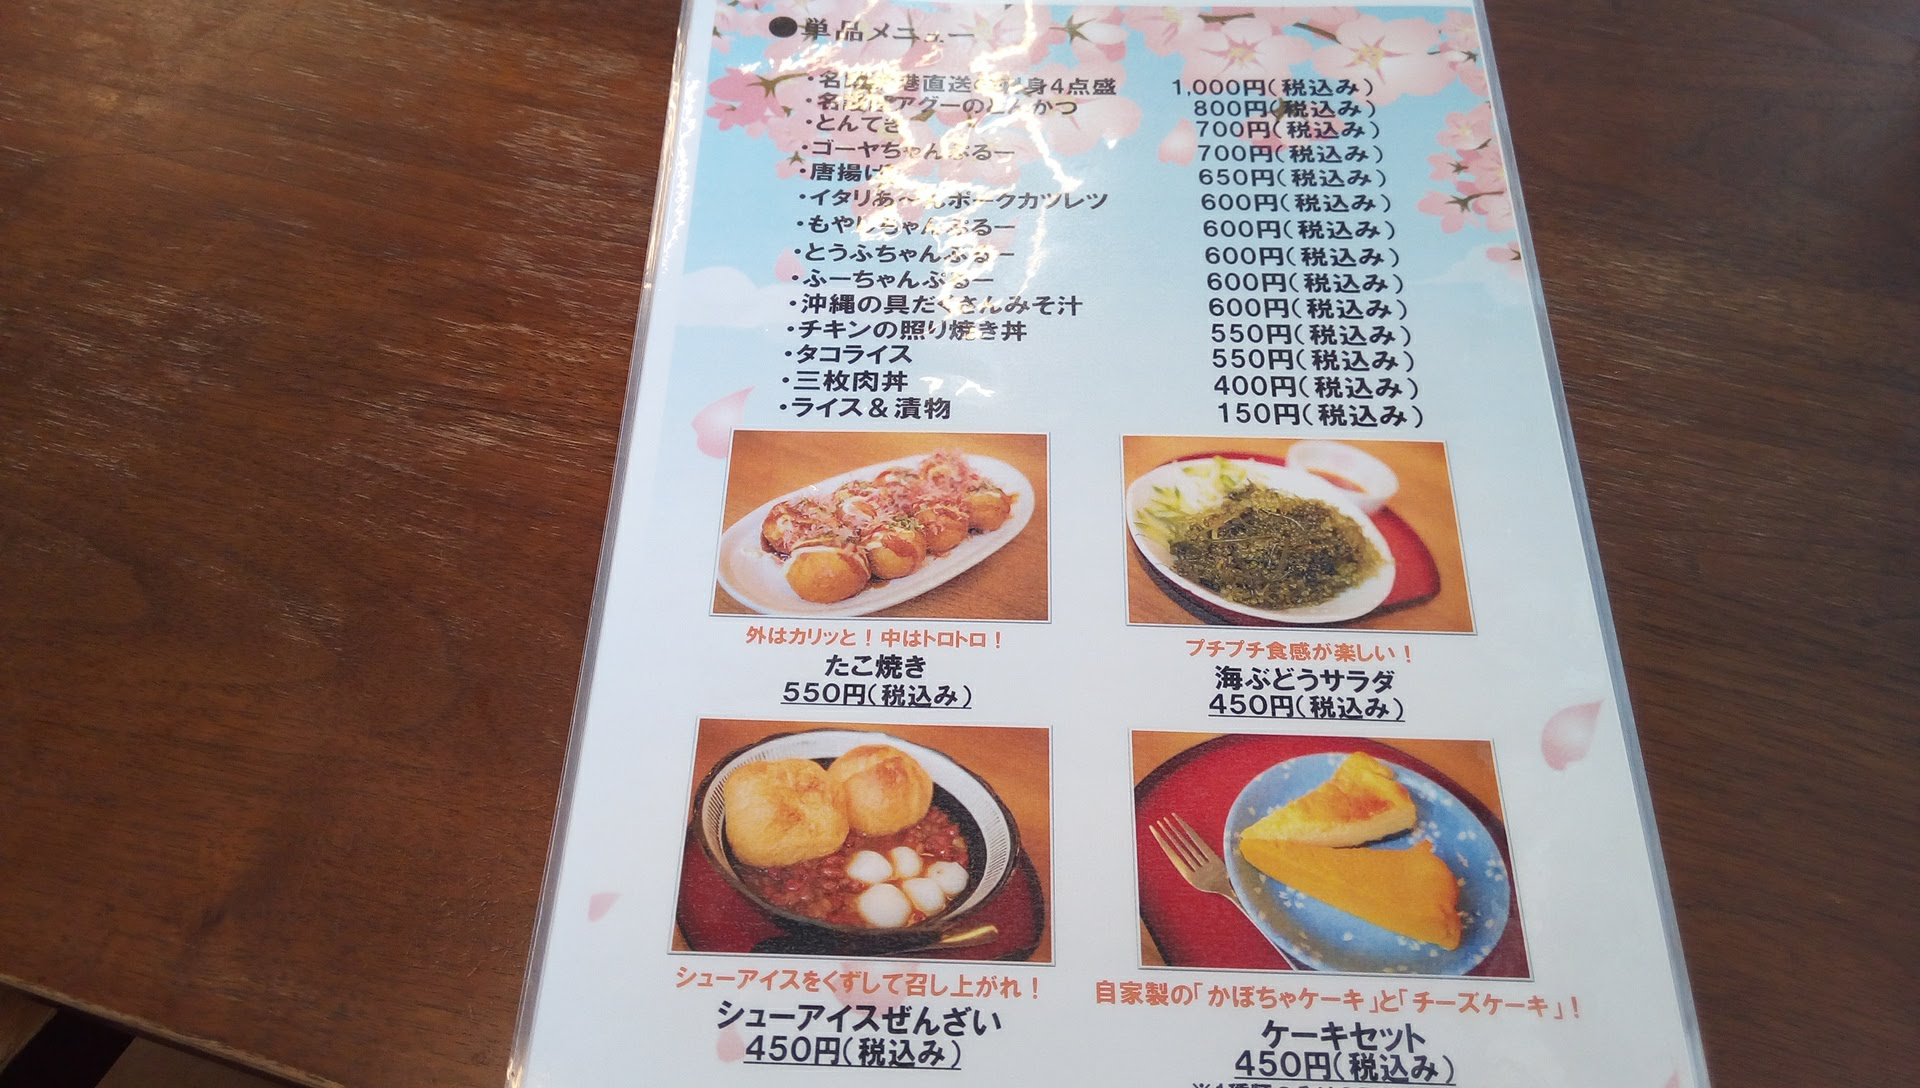 the menu of Sakura dining hall 3